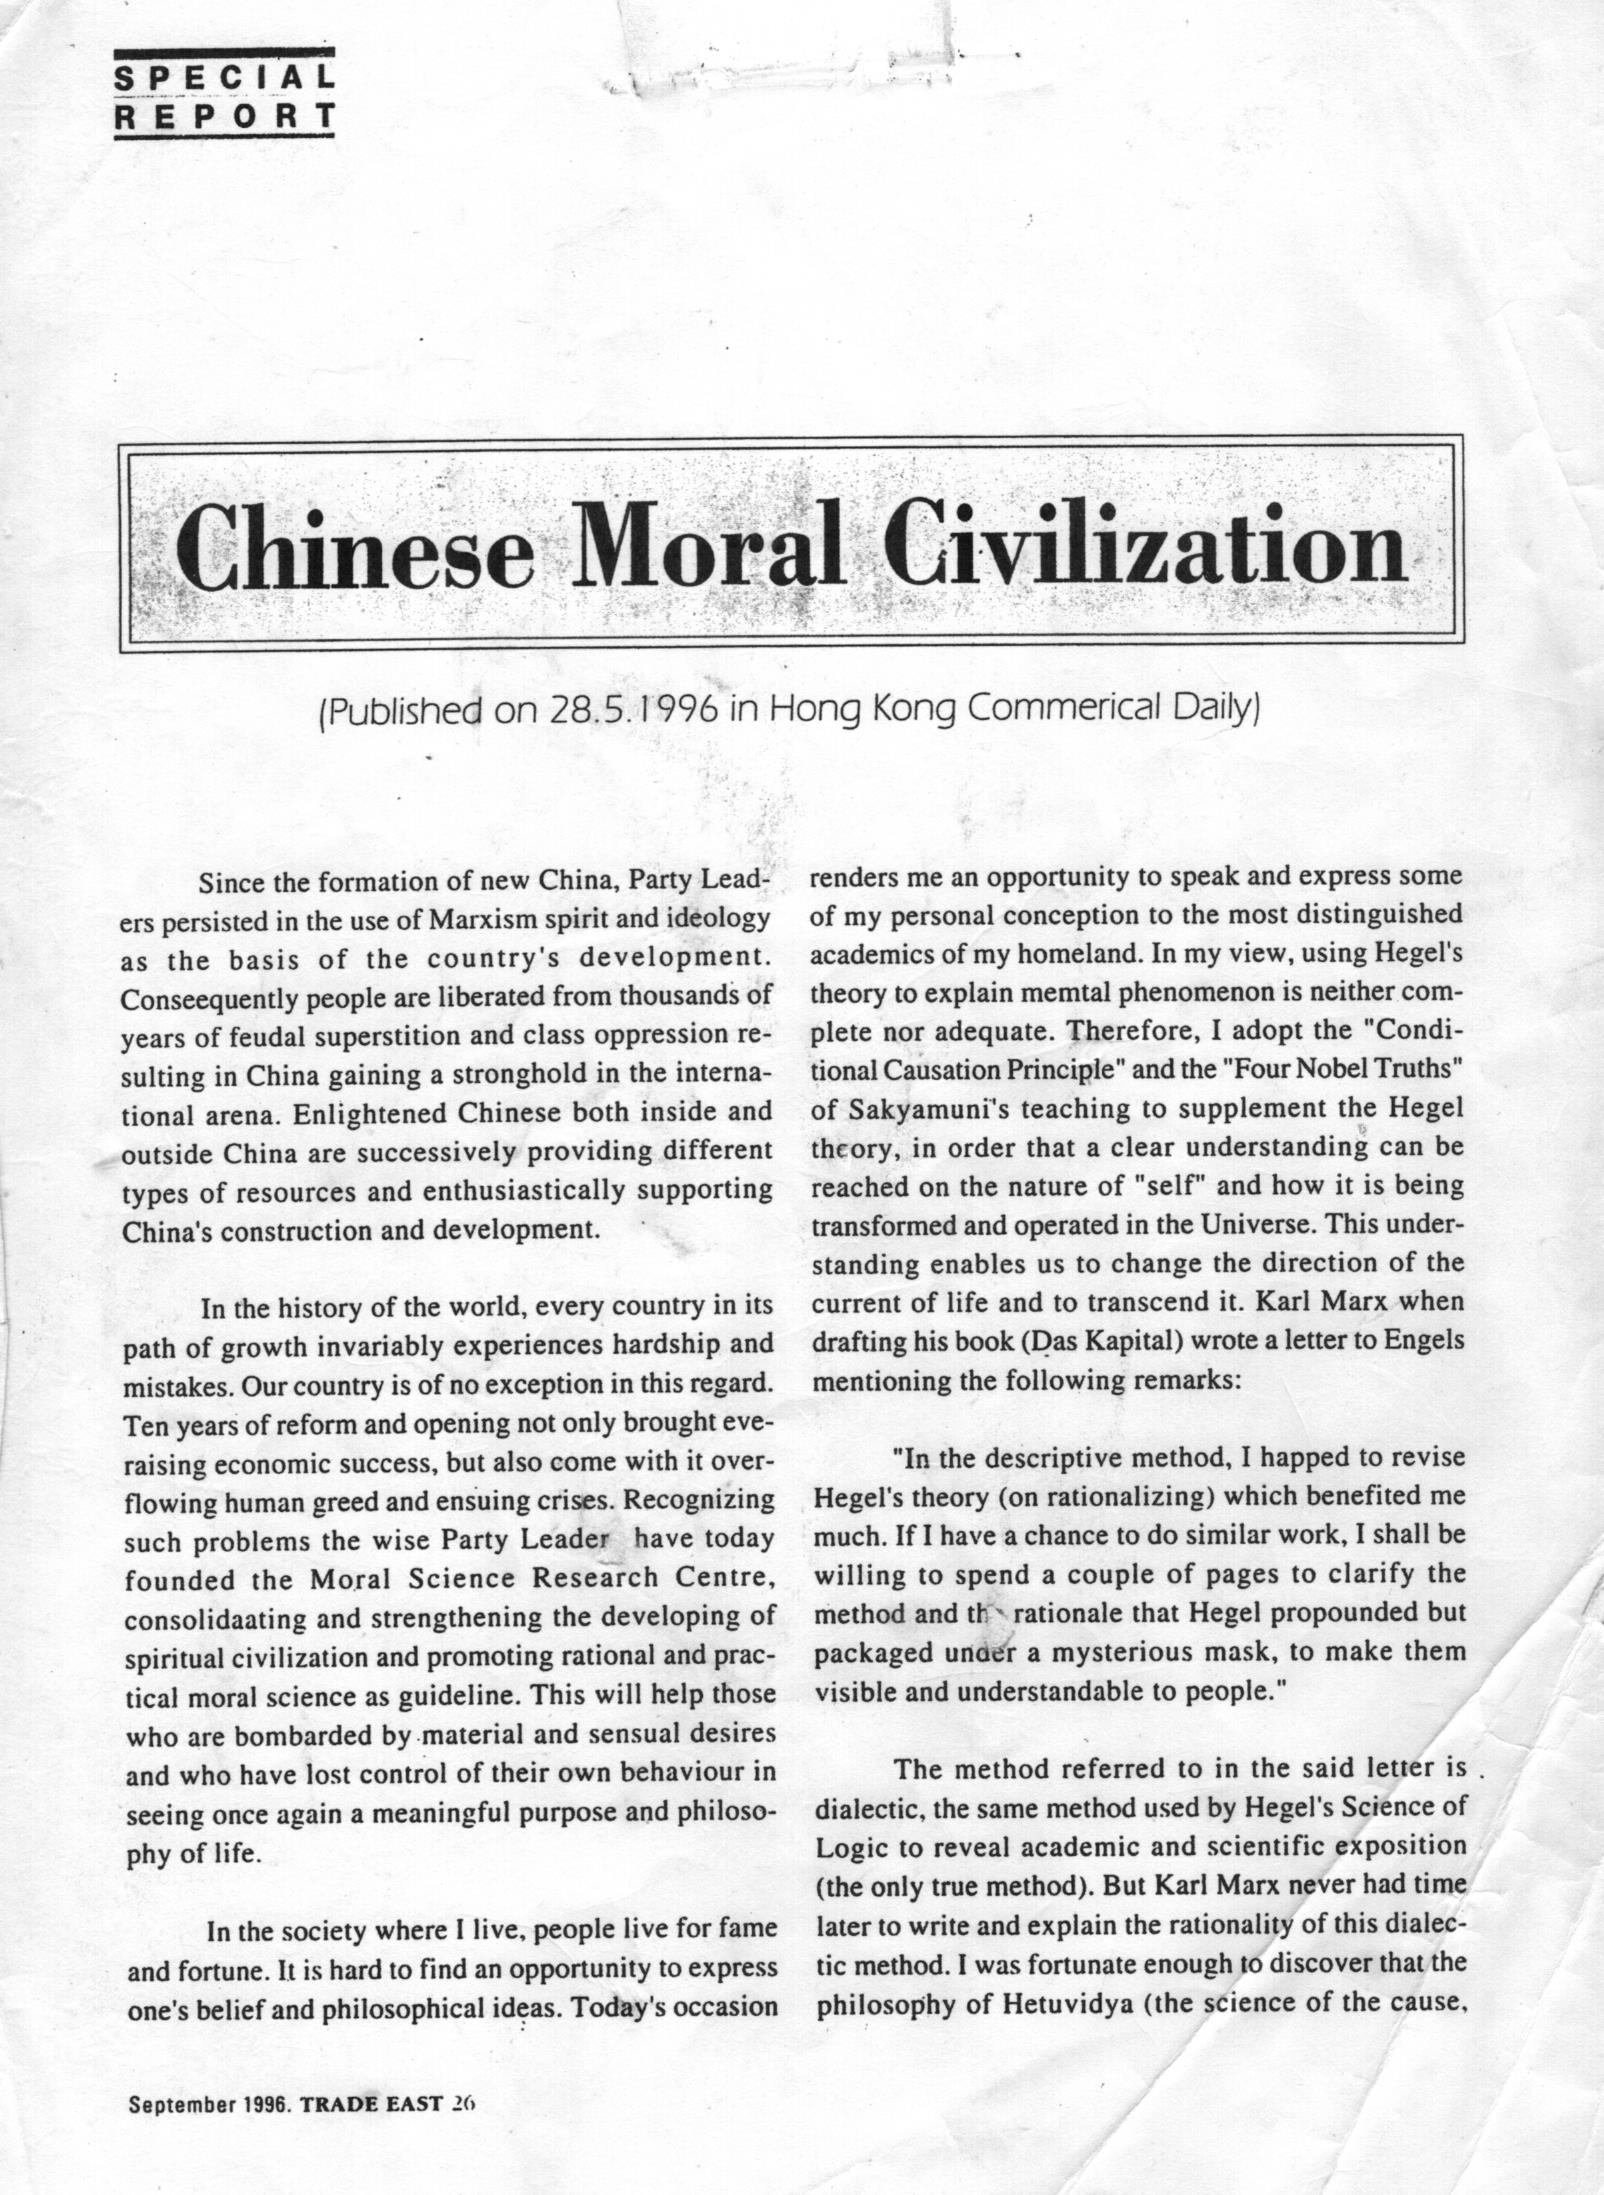 1 - September 1996 TRADE EAST (Chinese Moral Civilization)_1.jpg